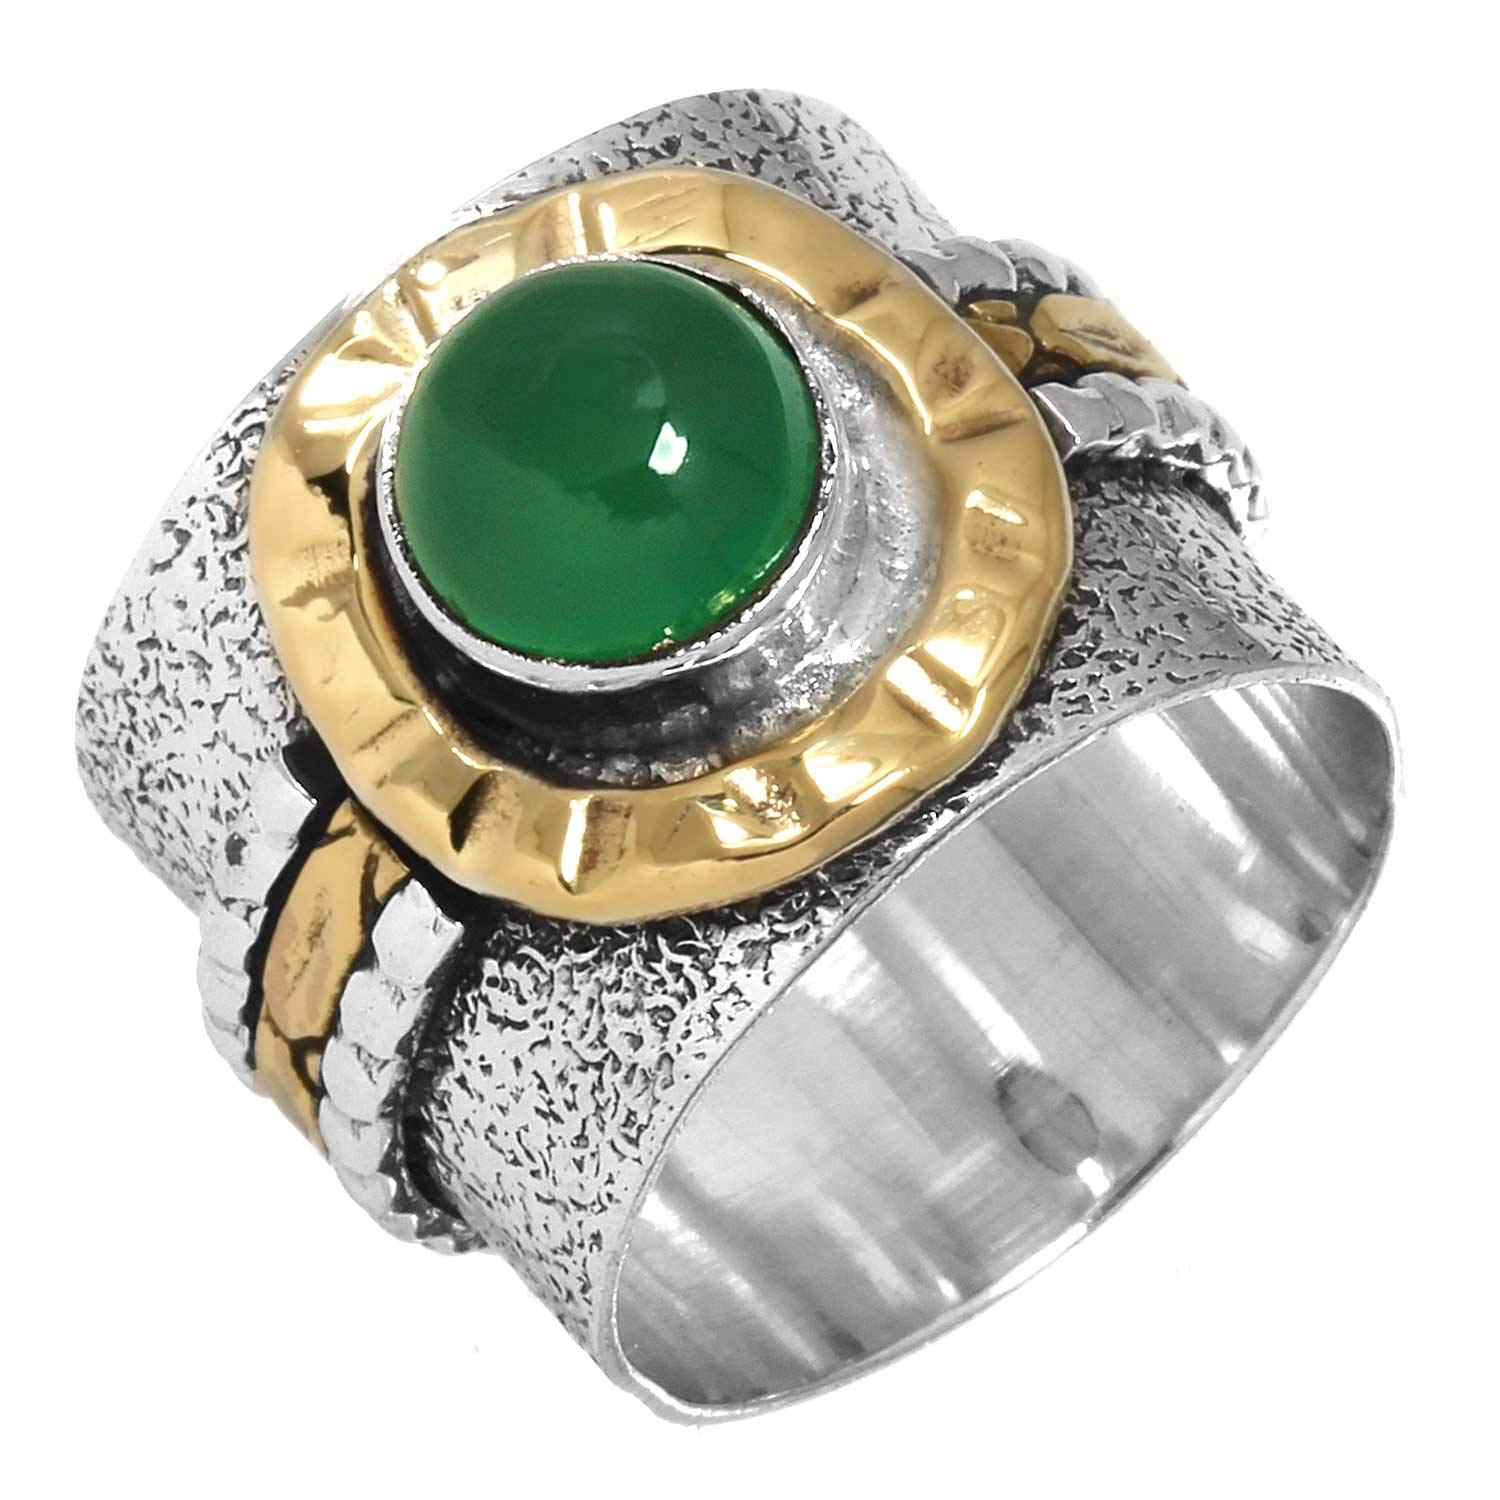 Natural Green Onyx Gemstone Ring Solid 925 Sterling Silver Two Tone Modern Jewelry Size 6